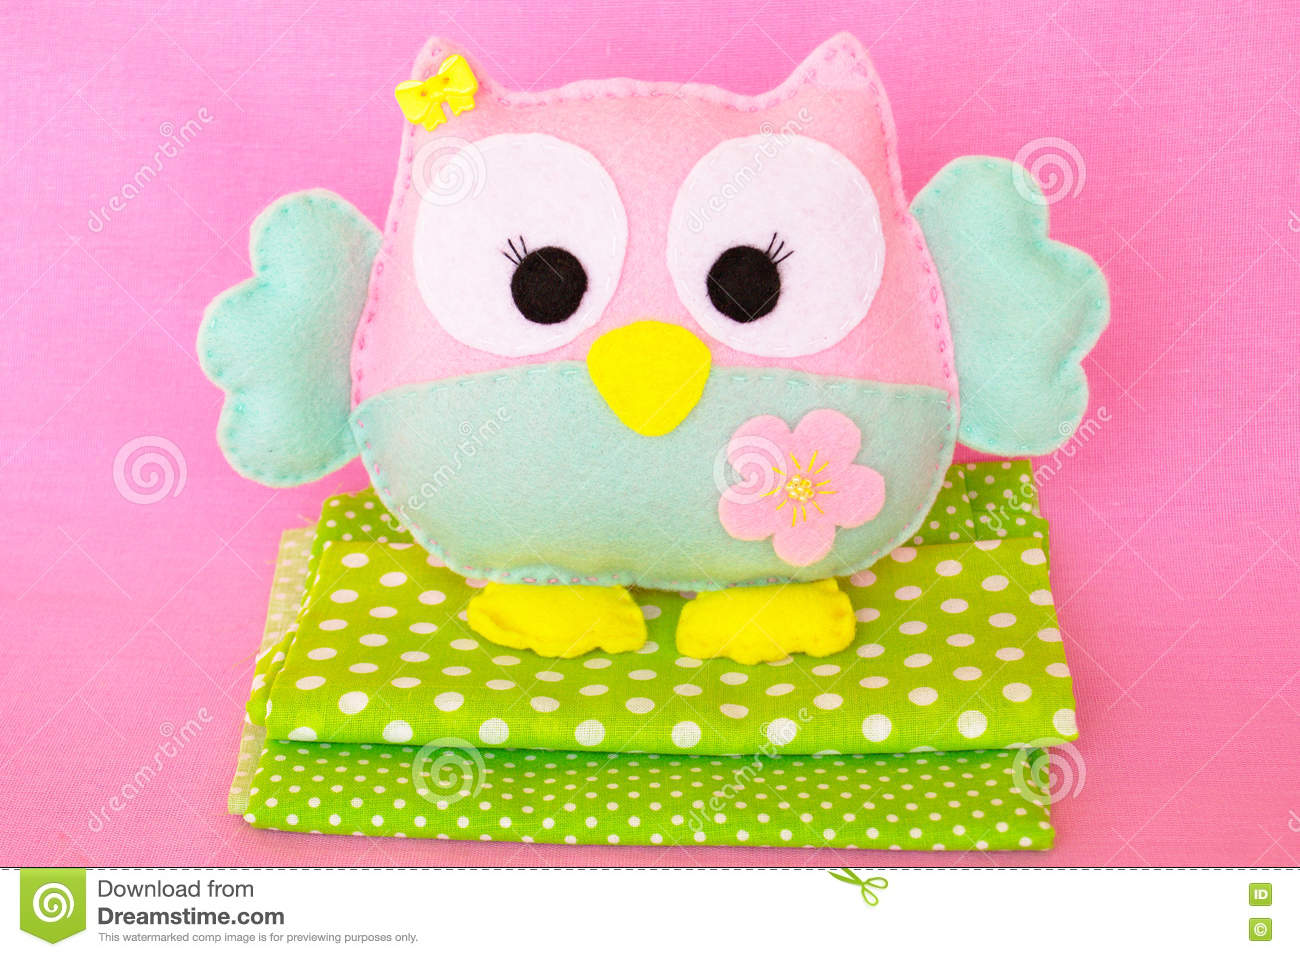 Funny Felt Owl Toy Easy Felt Sewing Crafts For Kids Stock Image